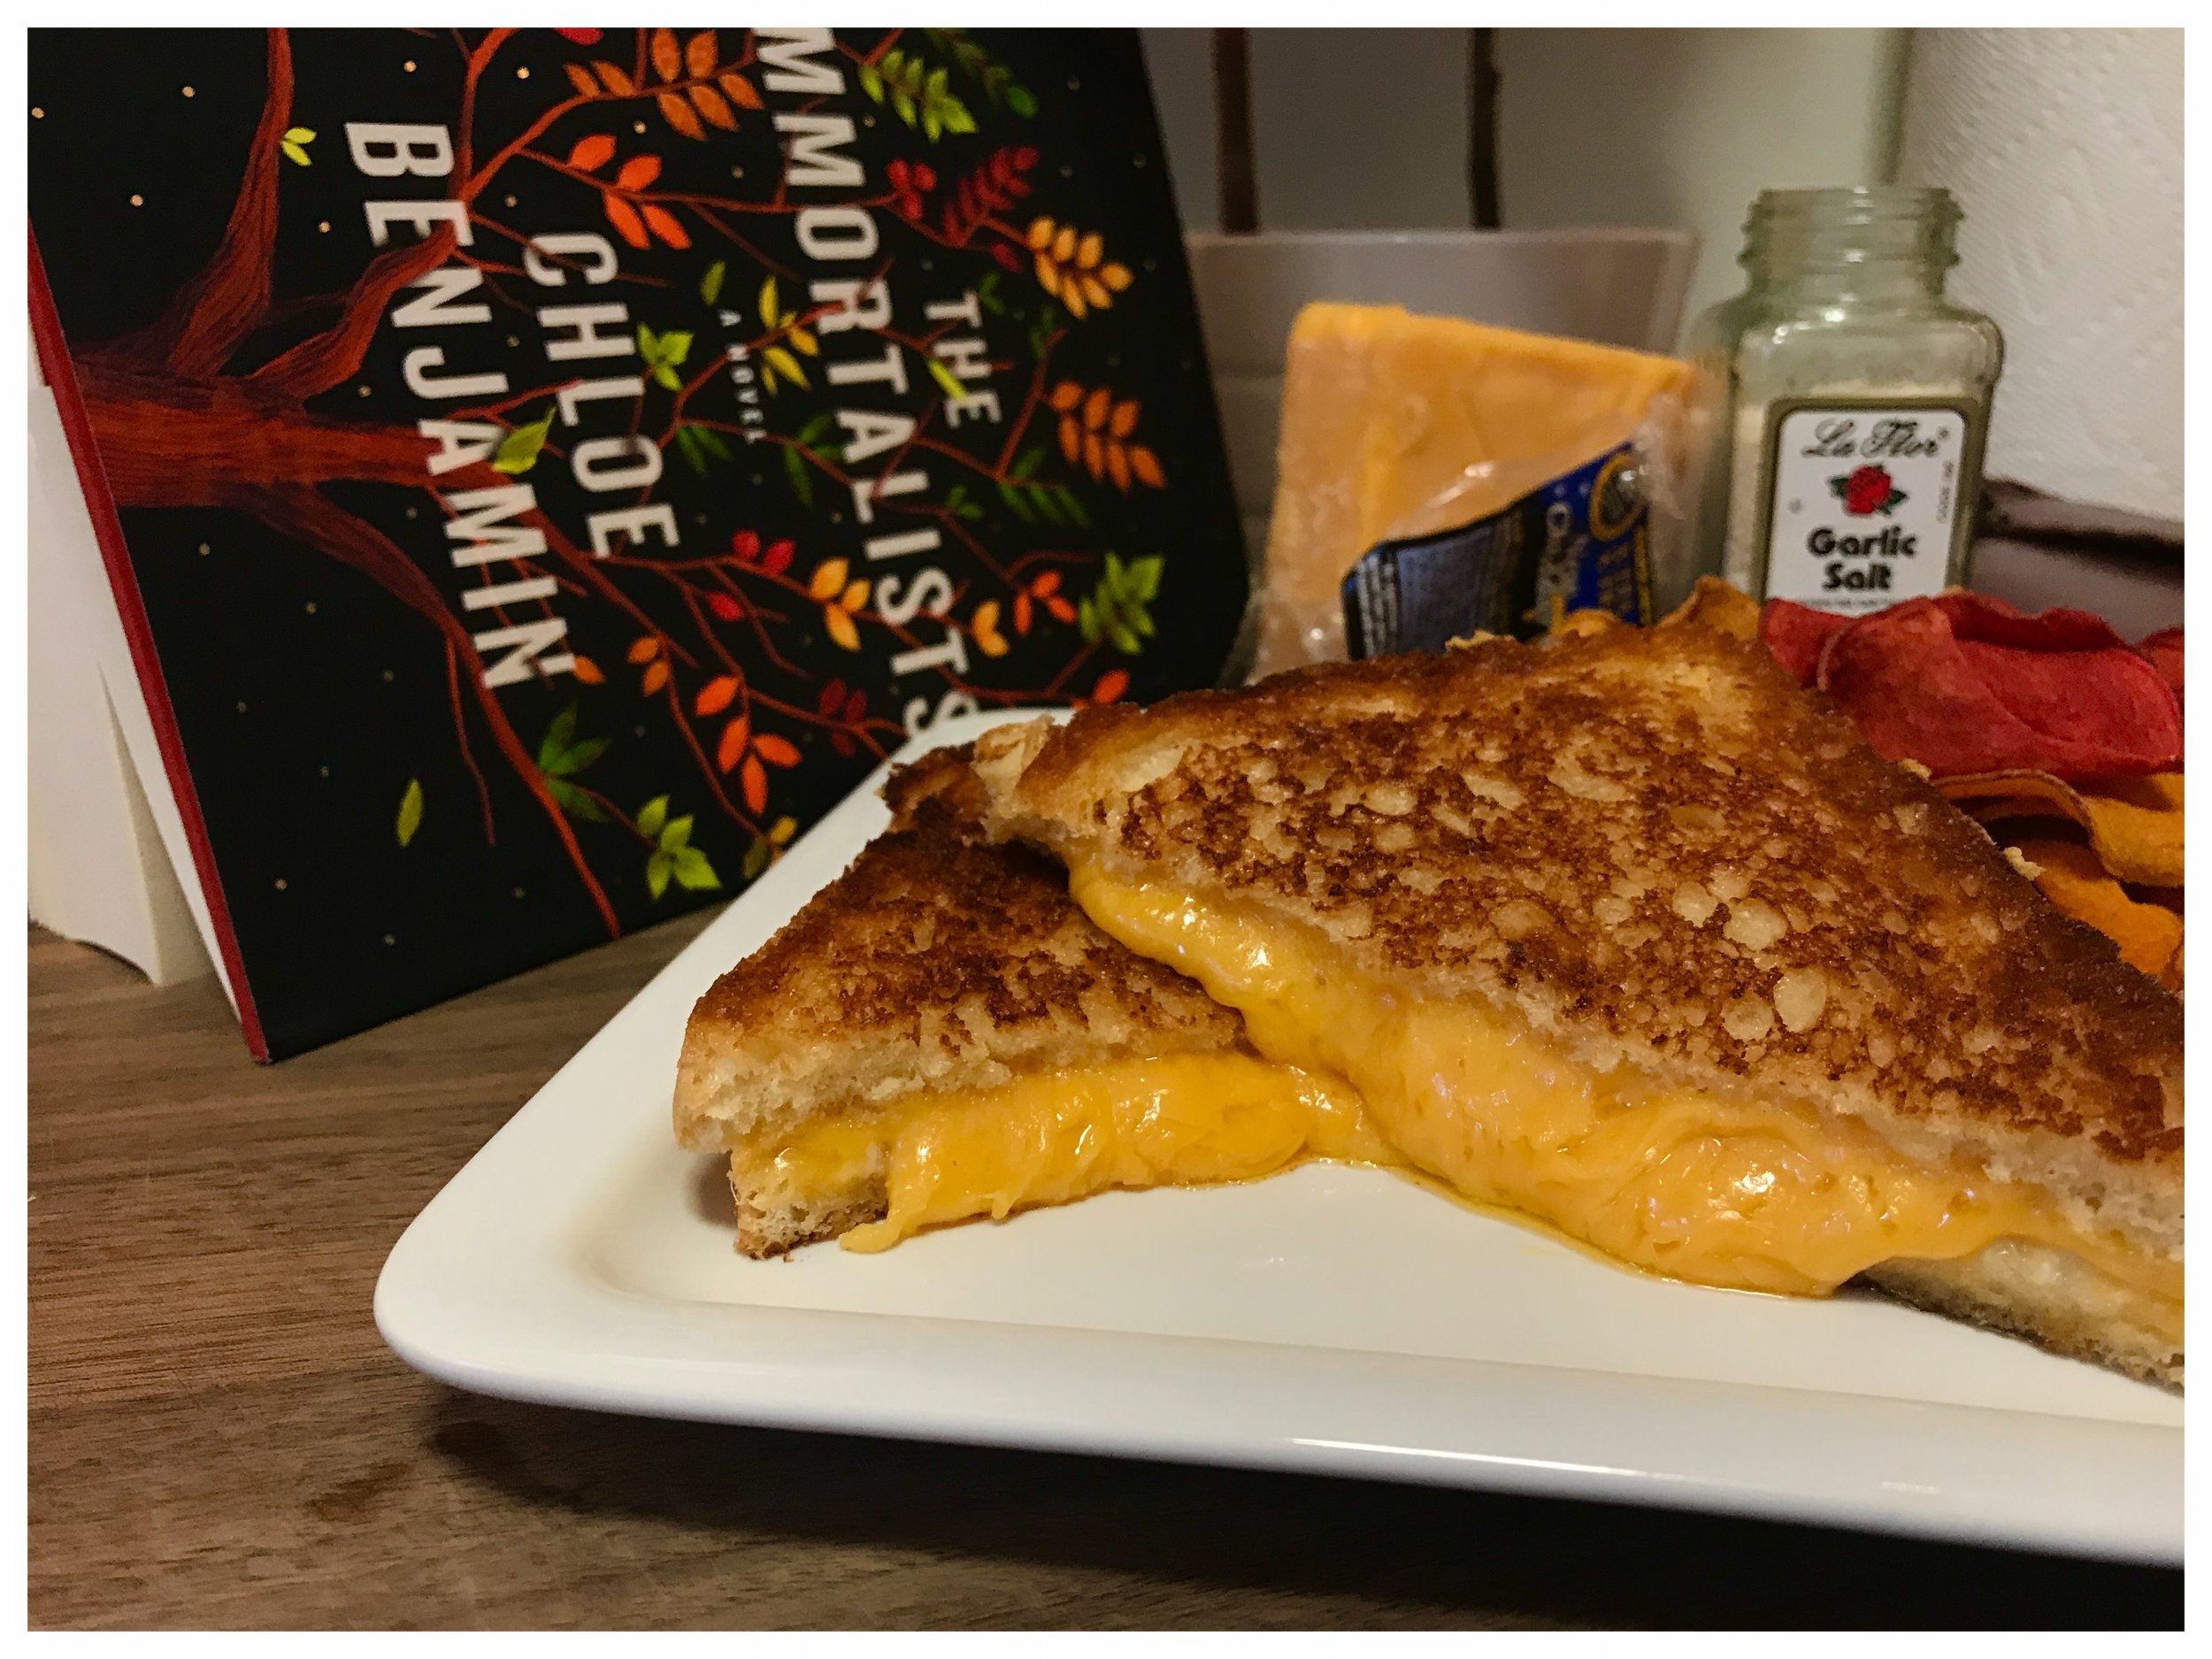 Ingredients:Two slices of White Bread, unsalted Butter, aged (18 months) Cheddar Cheese, and Garlic Salt.